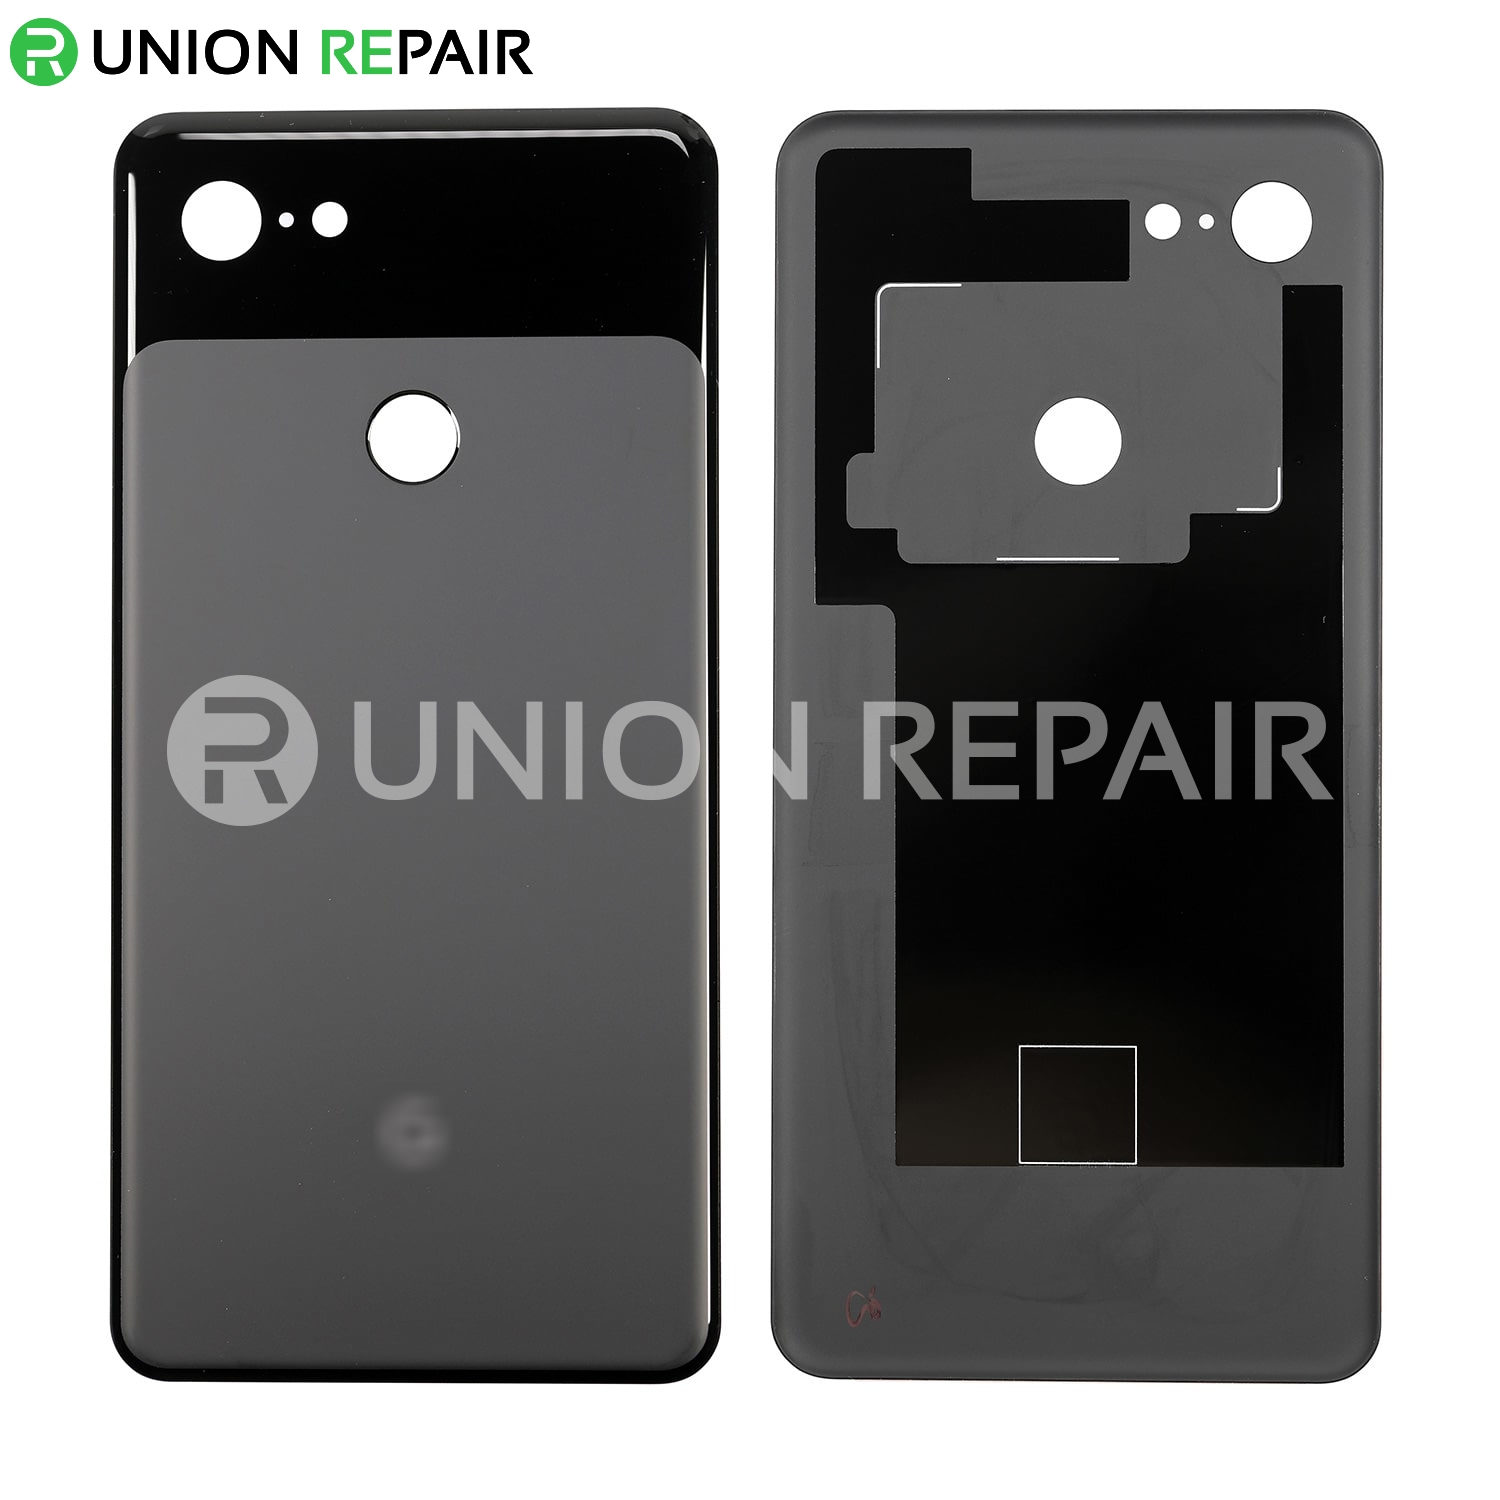 on sale e424c d7242 Replacement for Google Pixel 3 XL Back Cover - Black